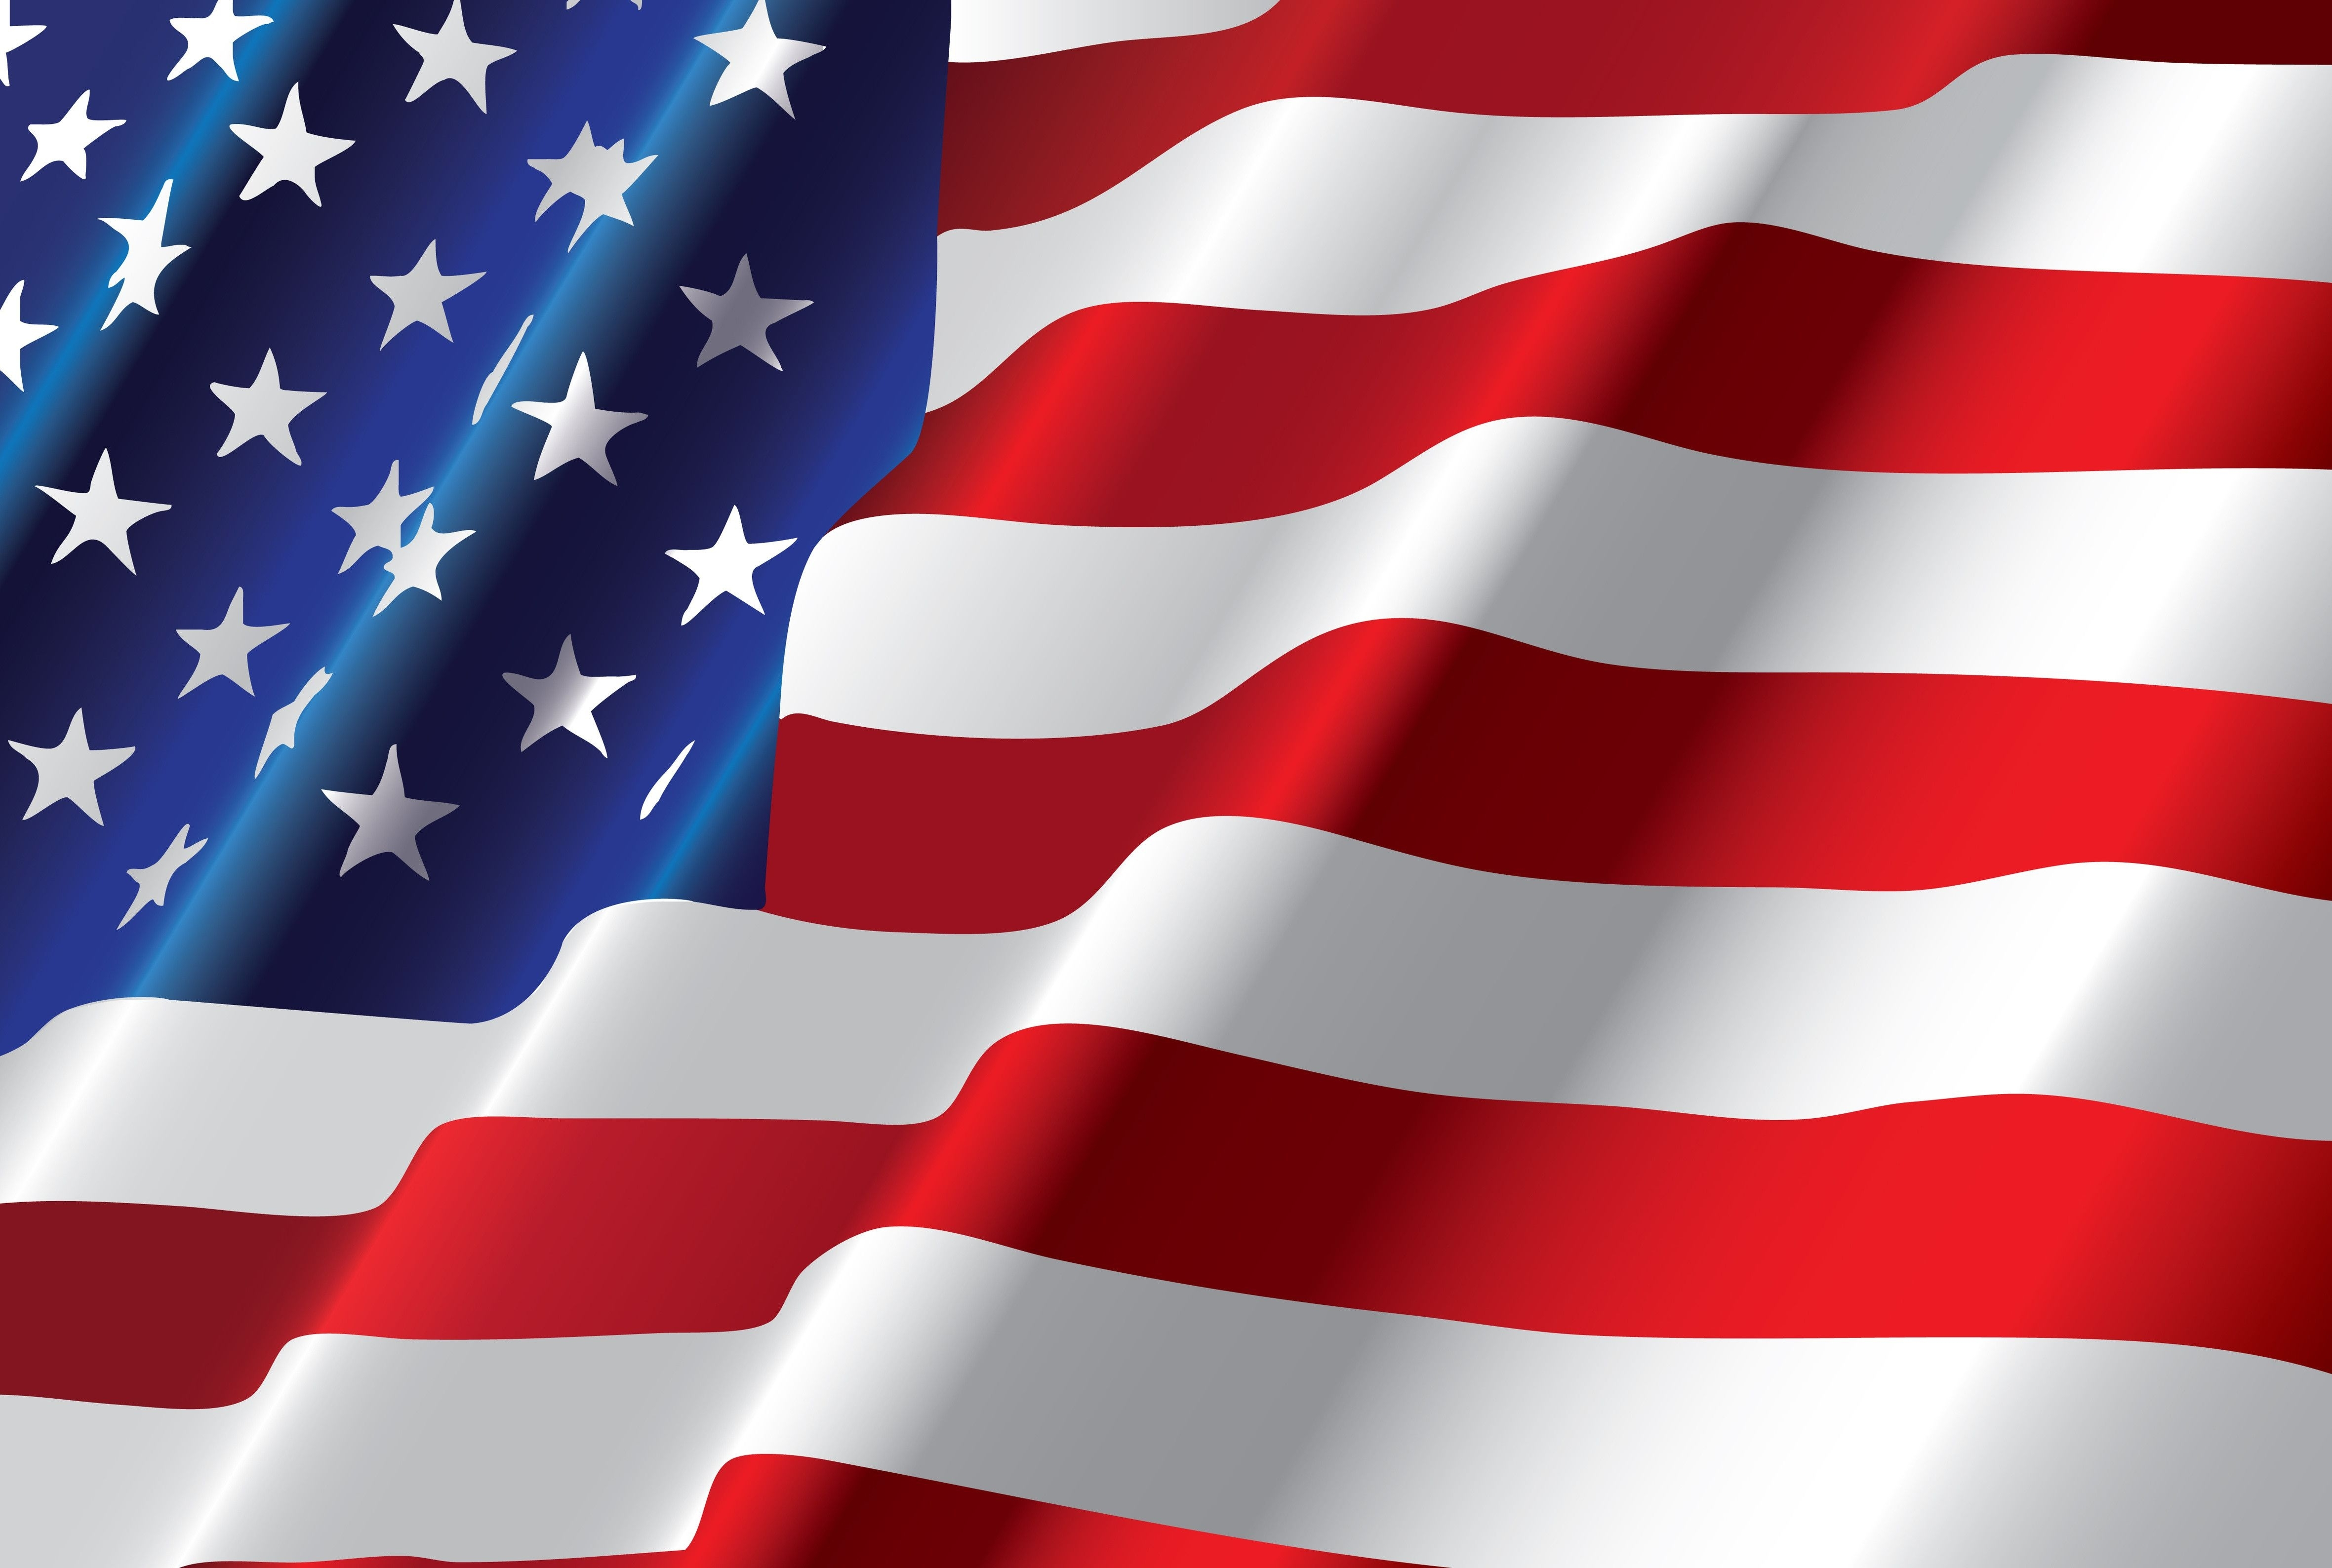 american flag wallpapers - american flag live images, hd wallpapers